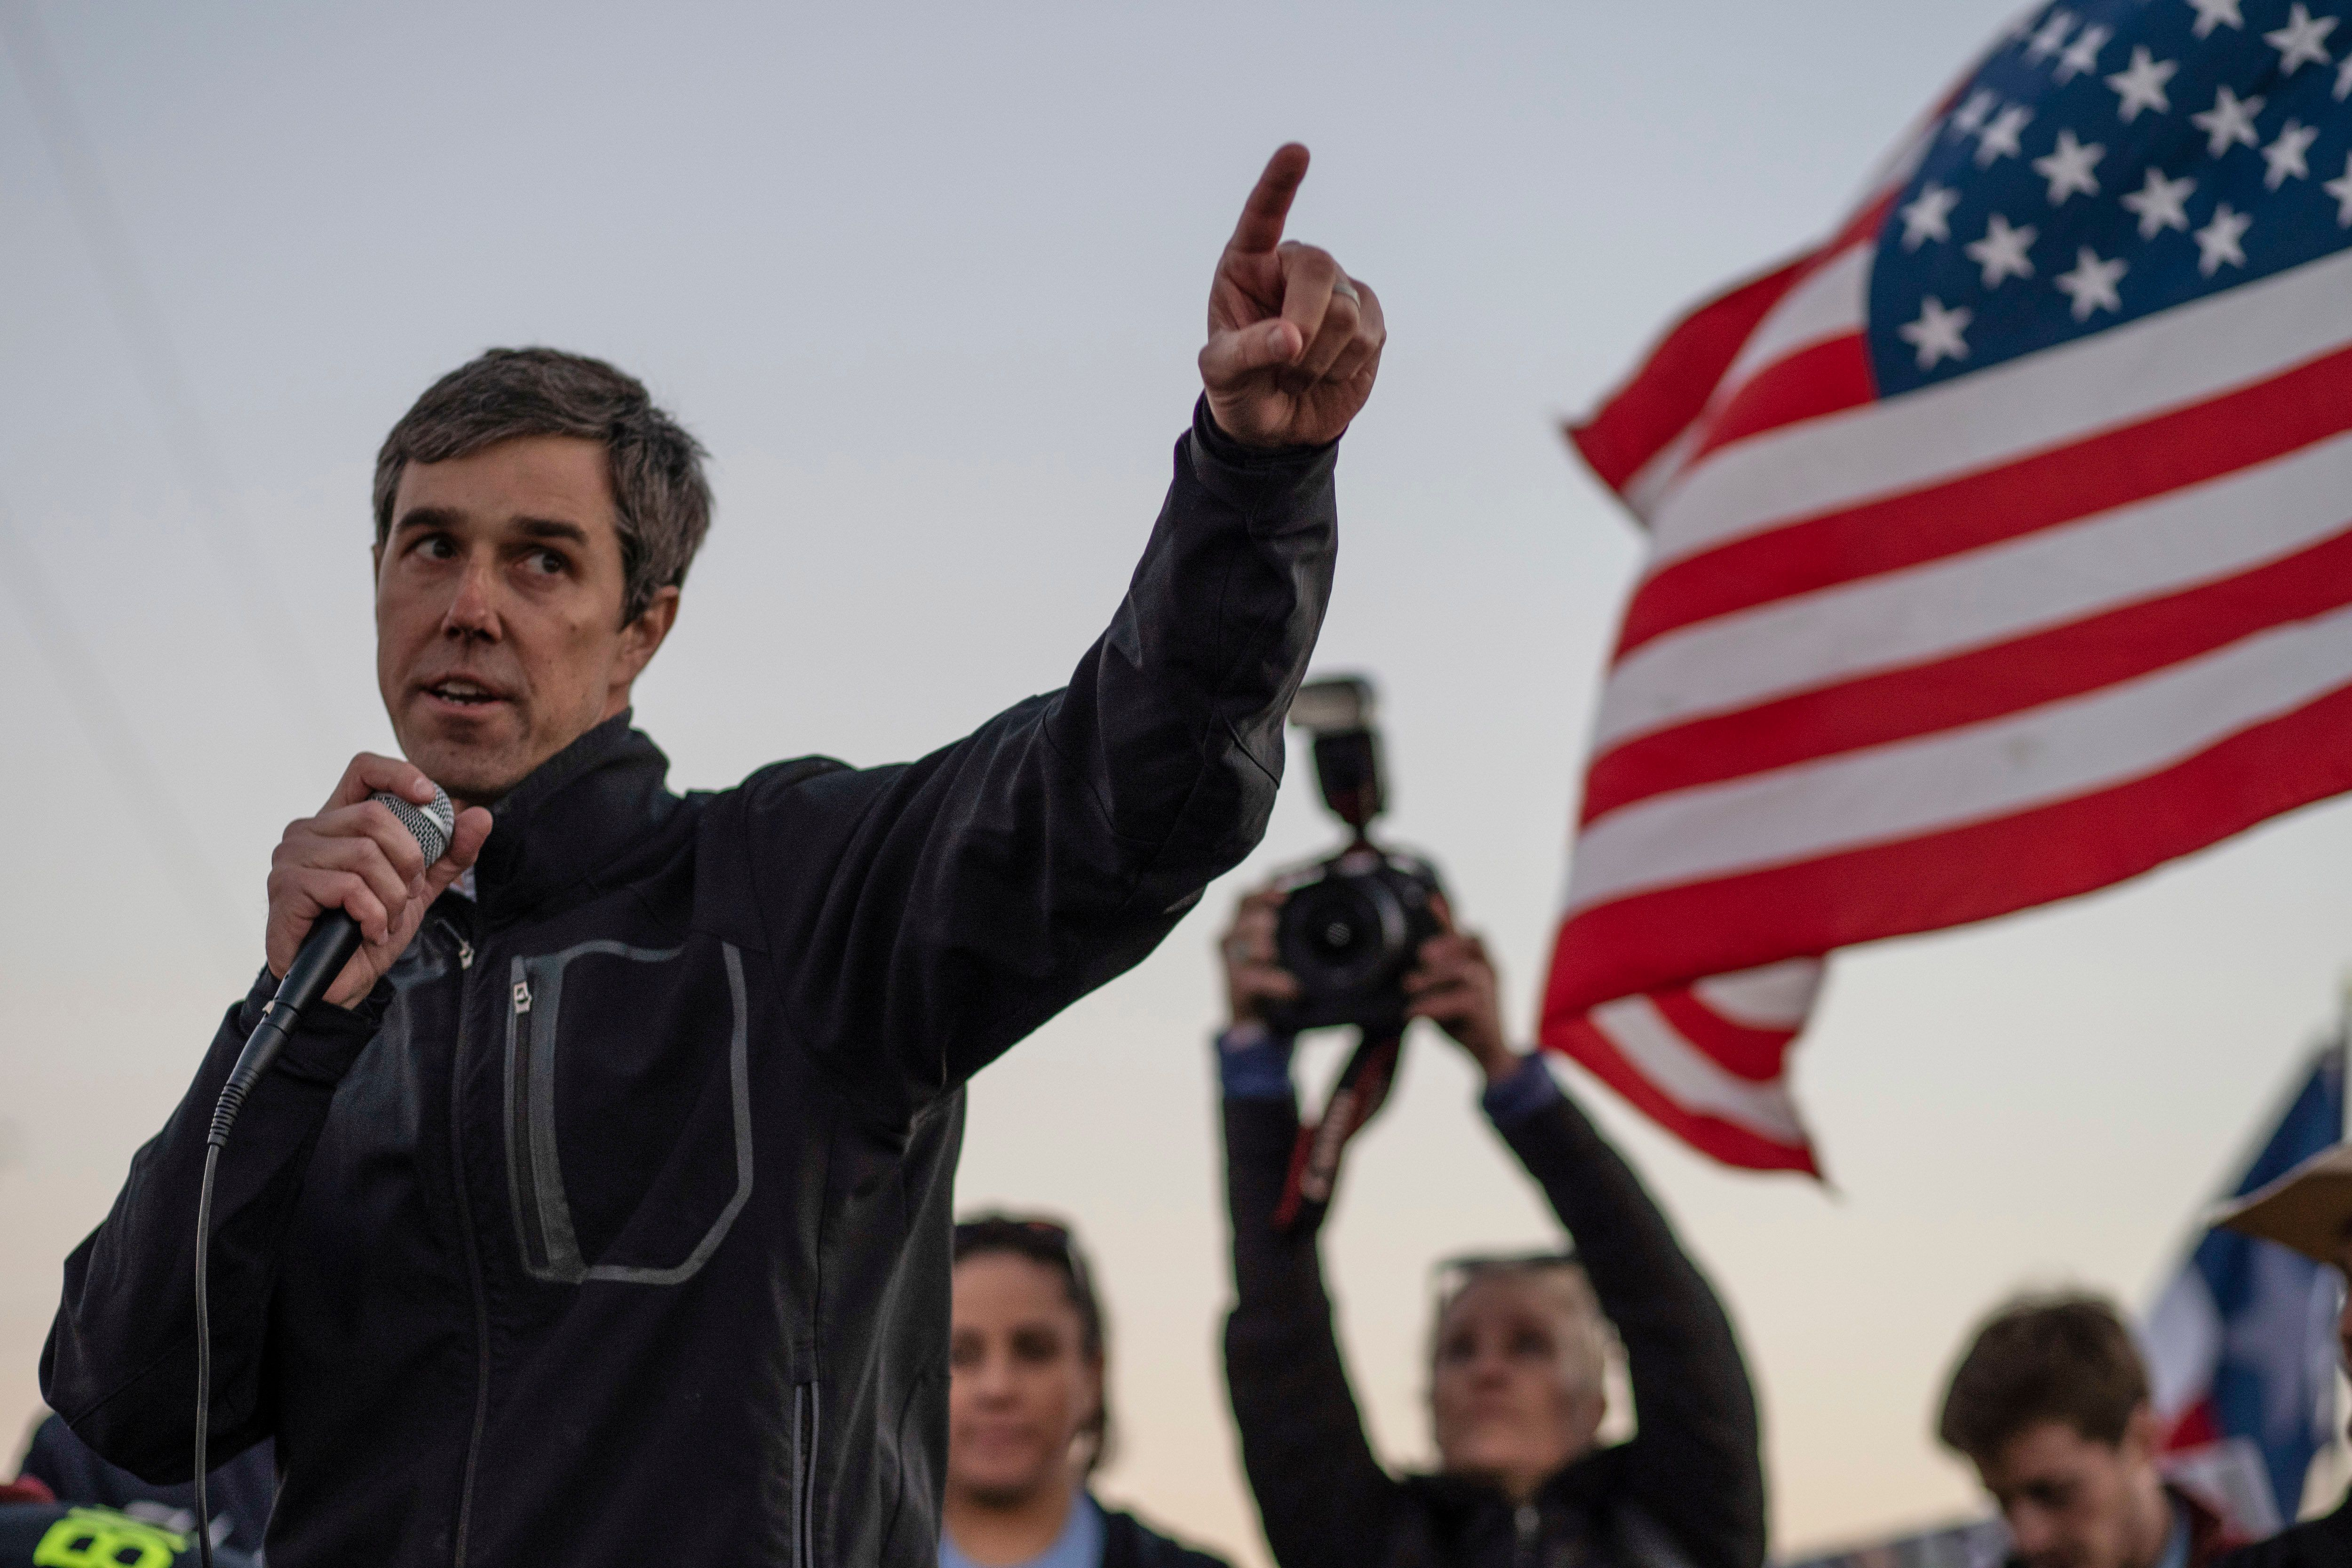 Beto O'Rourke will seek 2020 Democratic presidential nomination